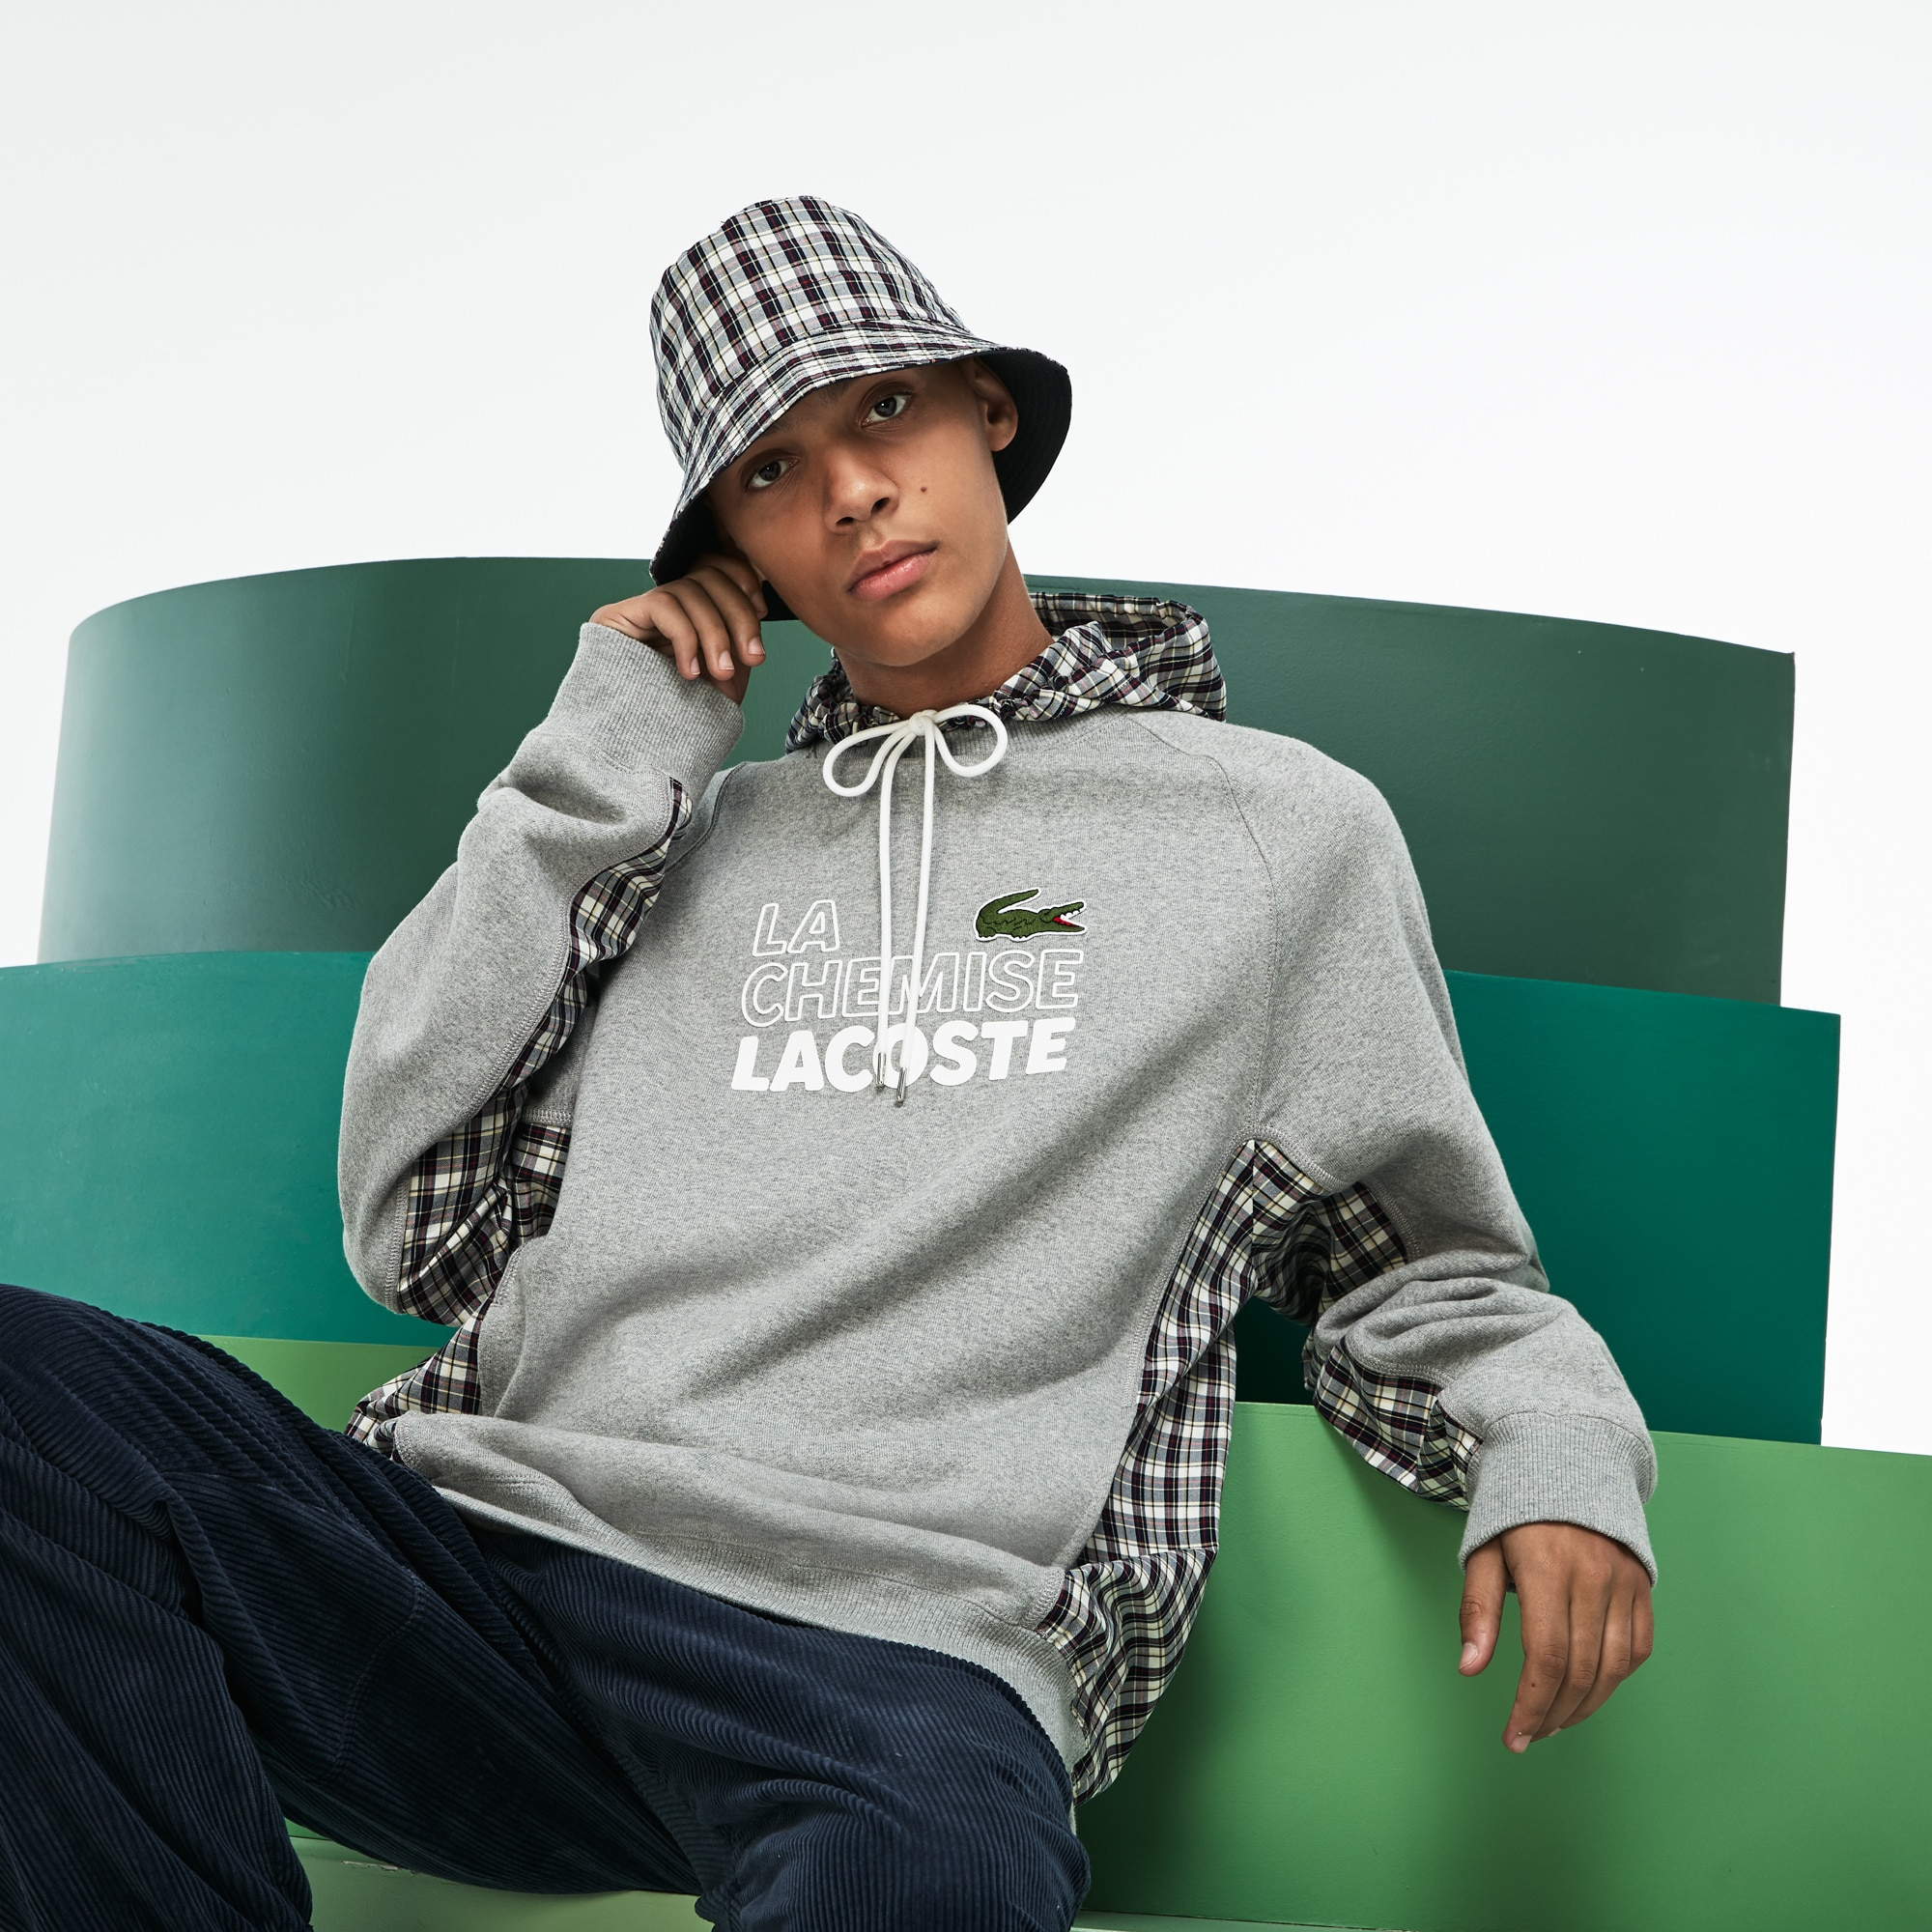 Men's Fashion Show 2-in-1 Fleece And Check Poplin Sweatshirt